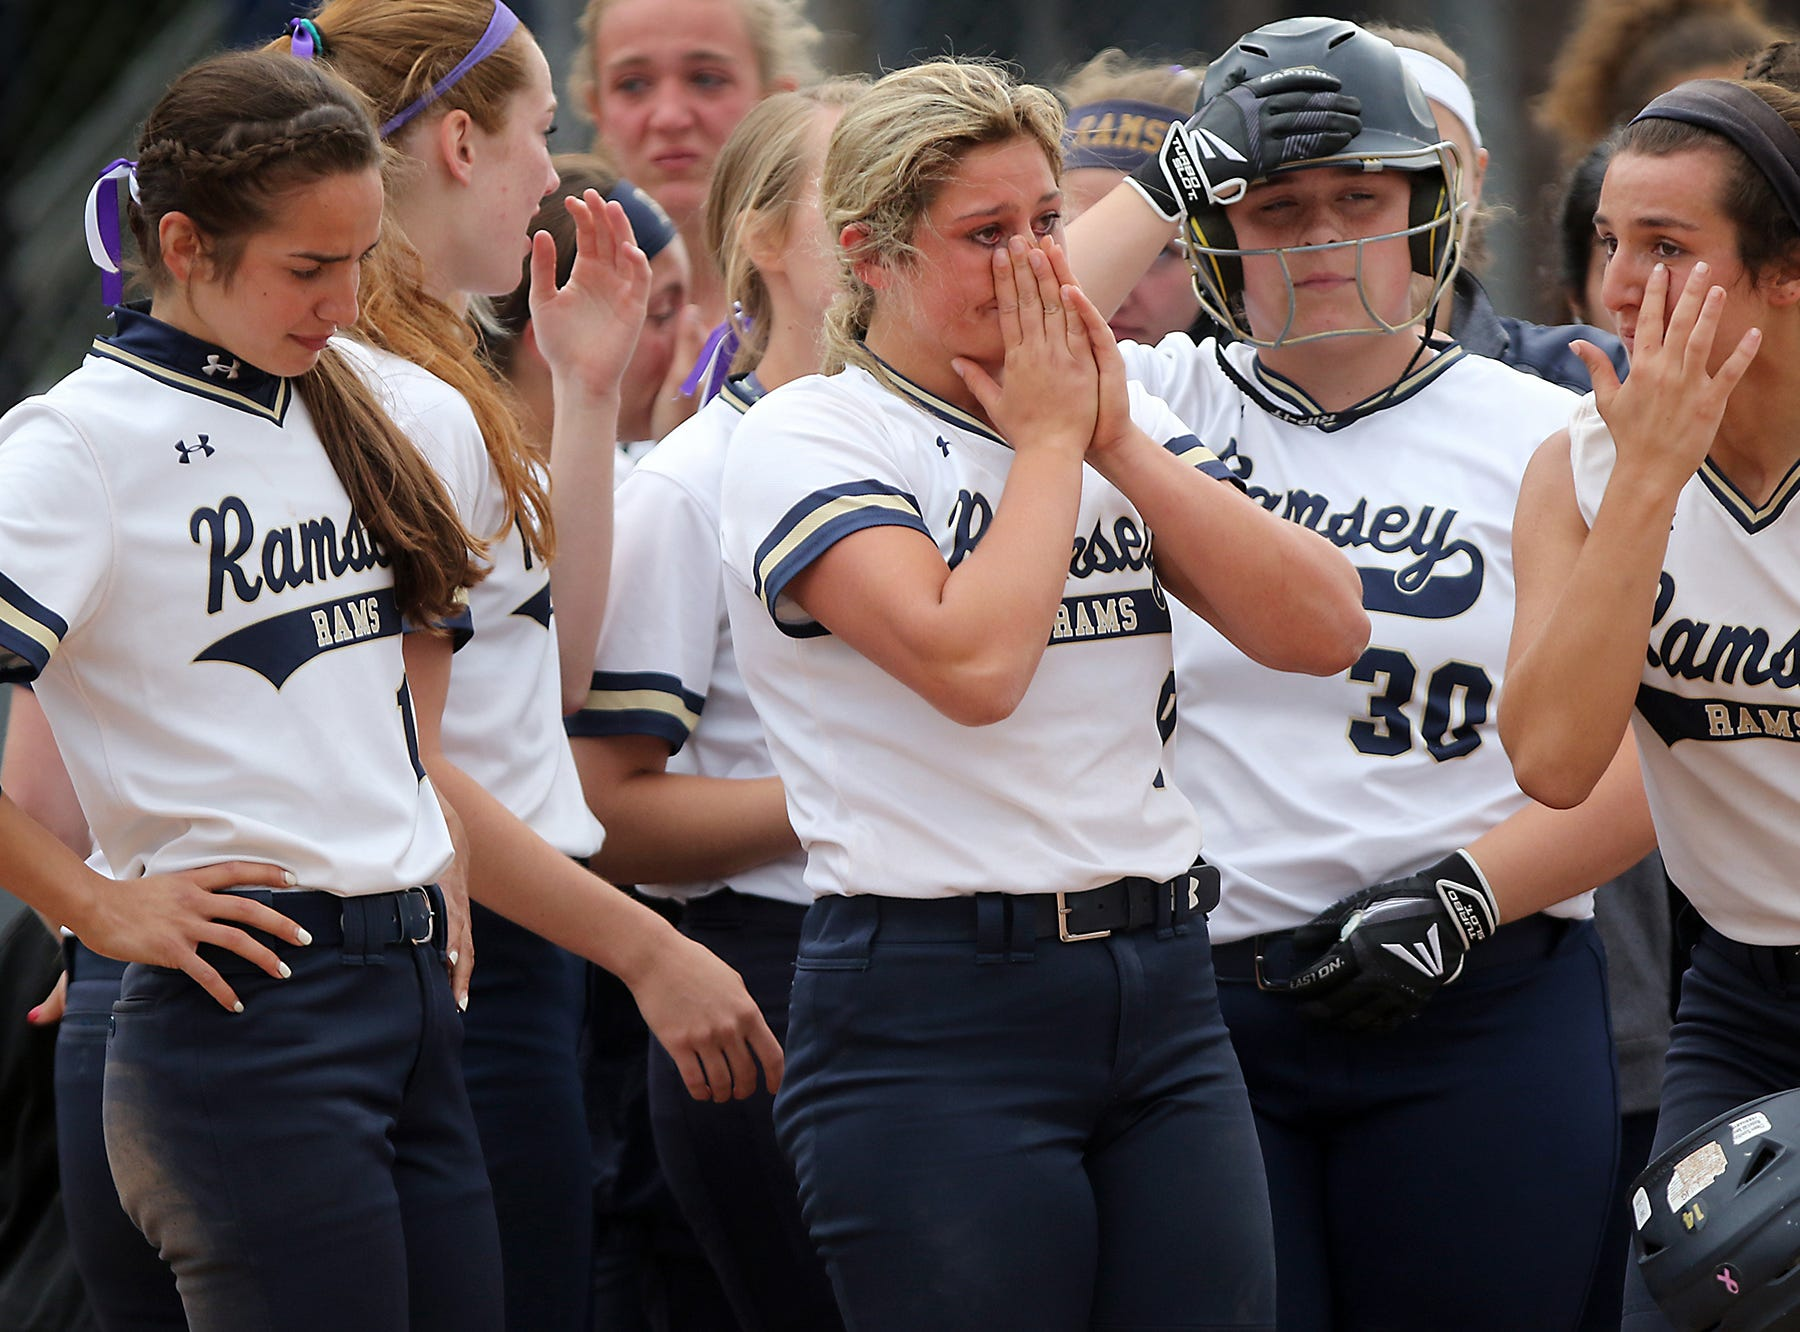 Ramsey tries to soak up the loss as ImmaculateConception won the state championship game, Sunday, June 1, 2018.